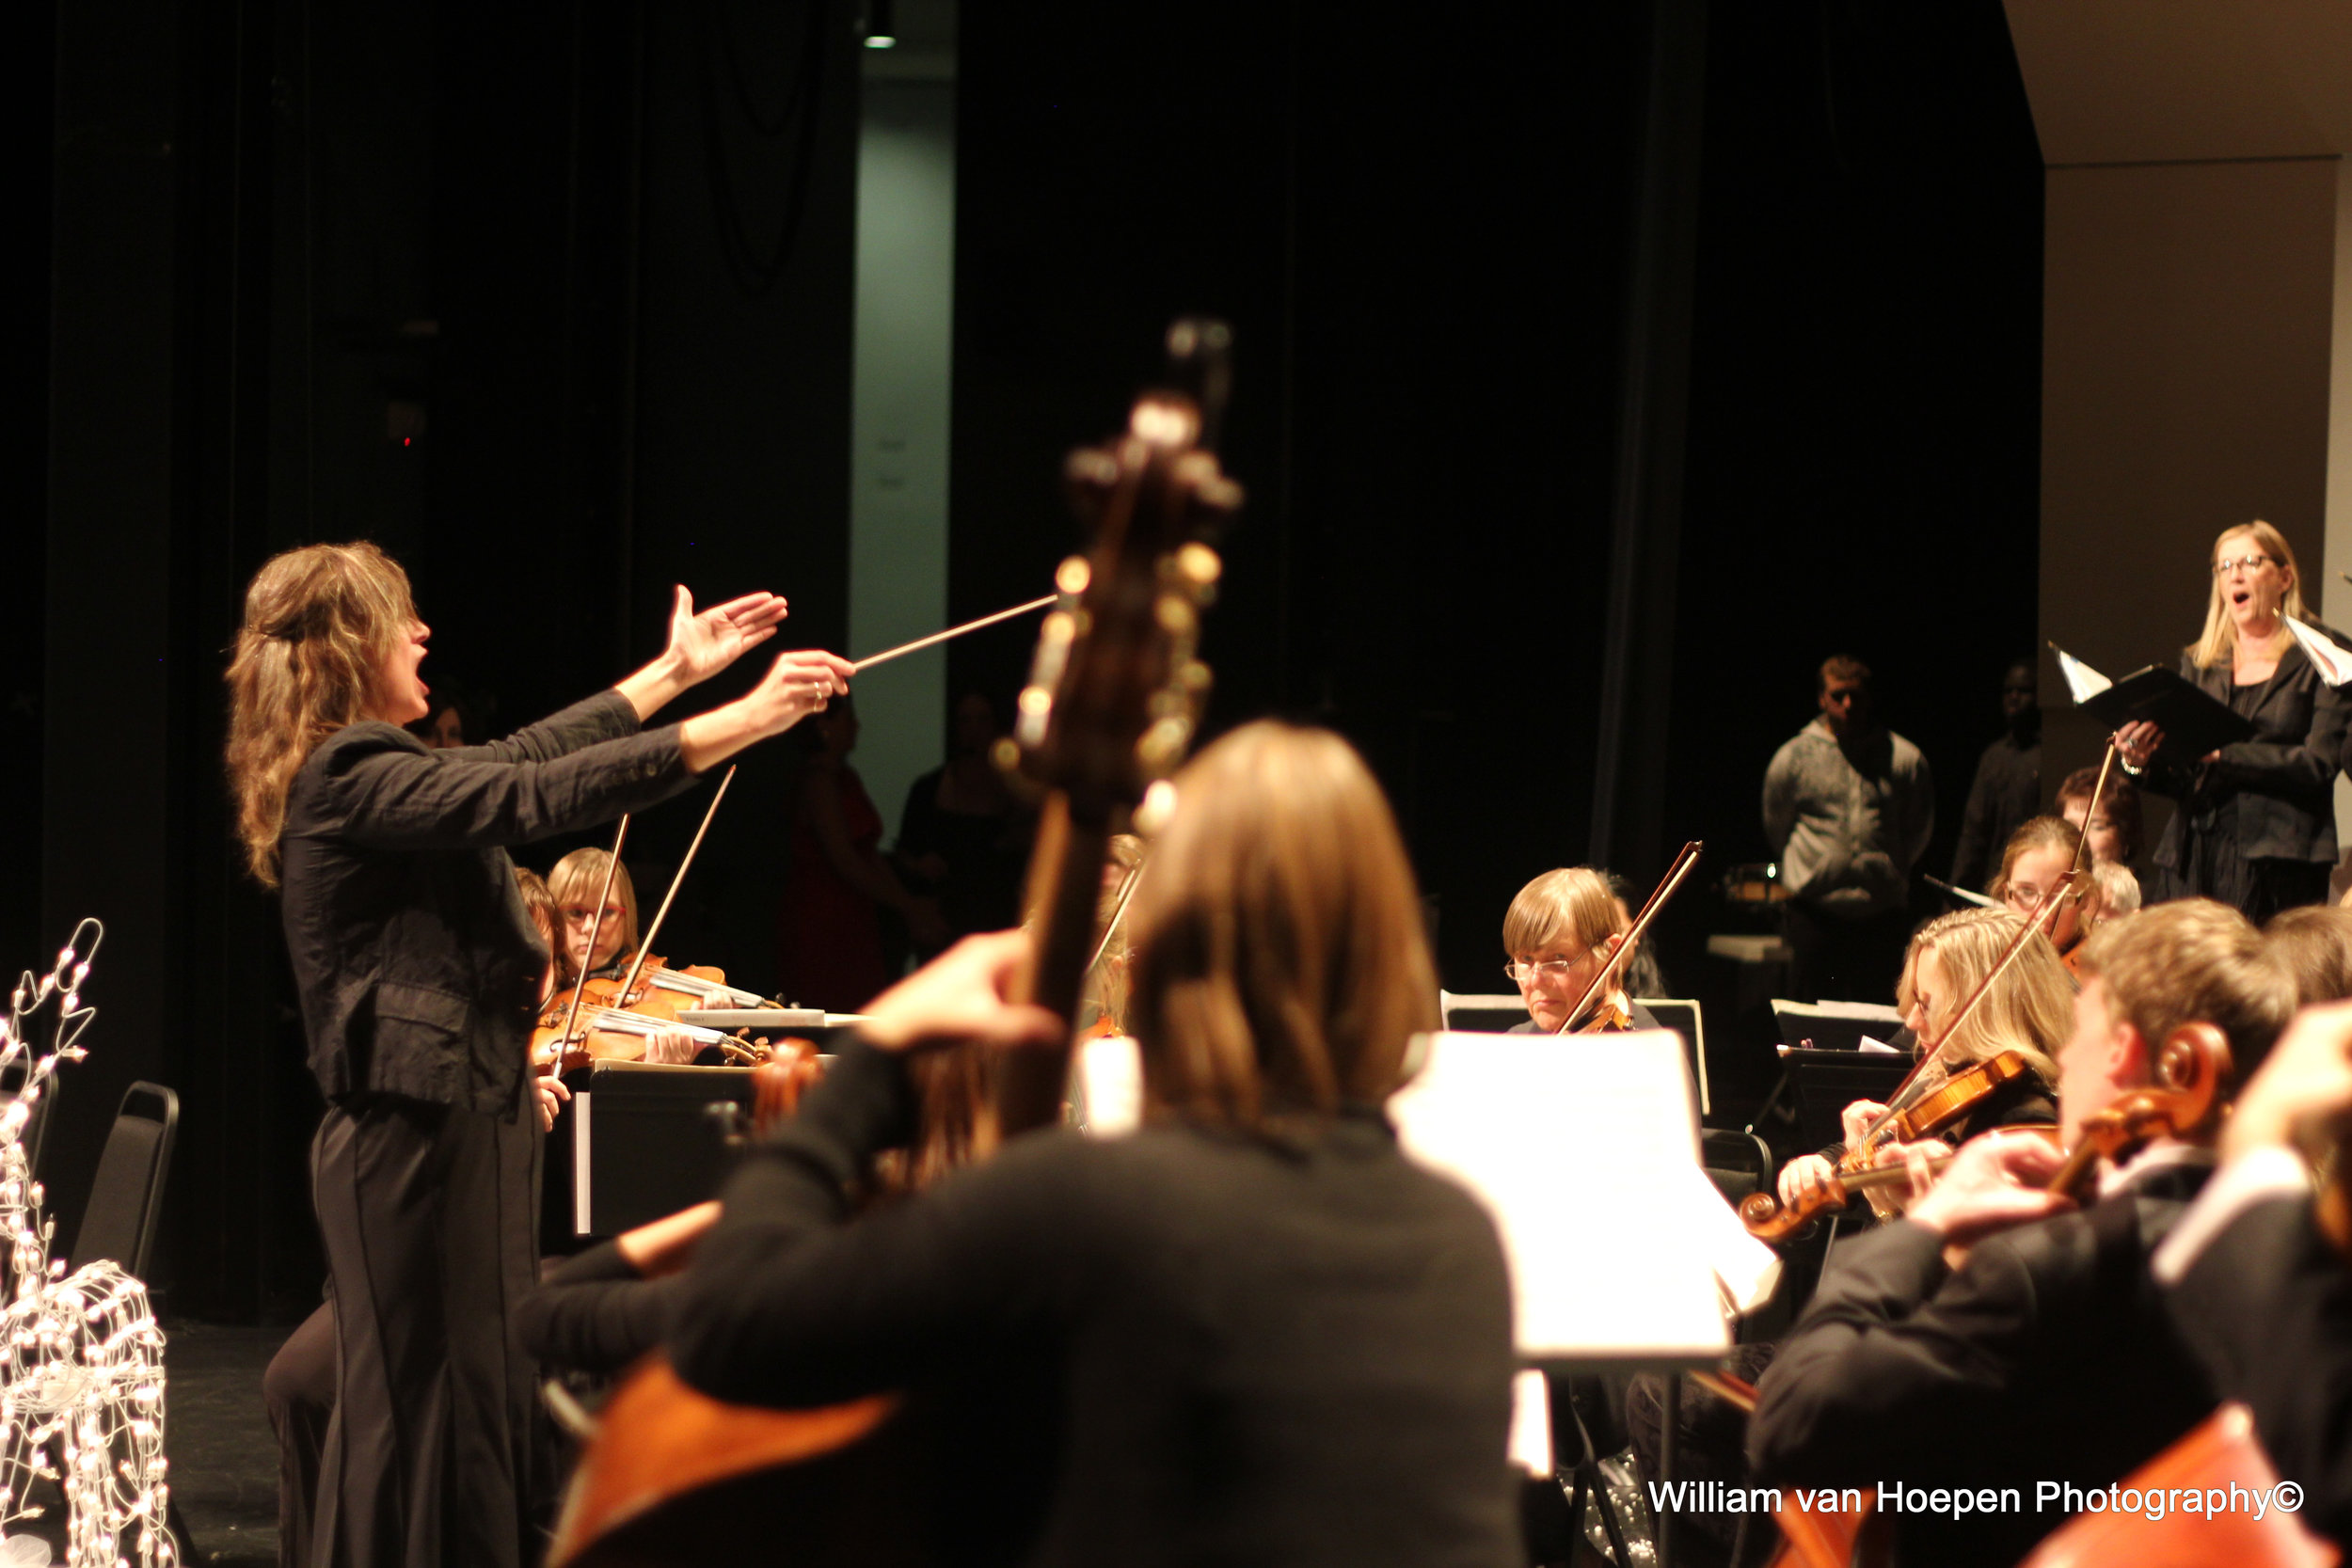 The Chilliwack Symphony Orchestra and Chorus (CSO) is a non-profit society, incorporated in August 1999. The late Maestro John van Liempt and Paula DeWit, founded the CSO.   It was created to offer Chilliwack music lovers their own first class symphony orchestra and chorus.  The CSO is Chilliwack's finest and most prestigious cultural and music asset. To hear the world's finest music masterpieces played by musicians and sung by singers from the Fraser Valley is an exhilarating and profound experience. Concerts leave patrons singing and humming our music on their way home.